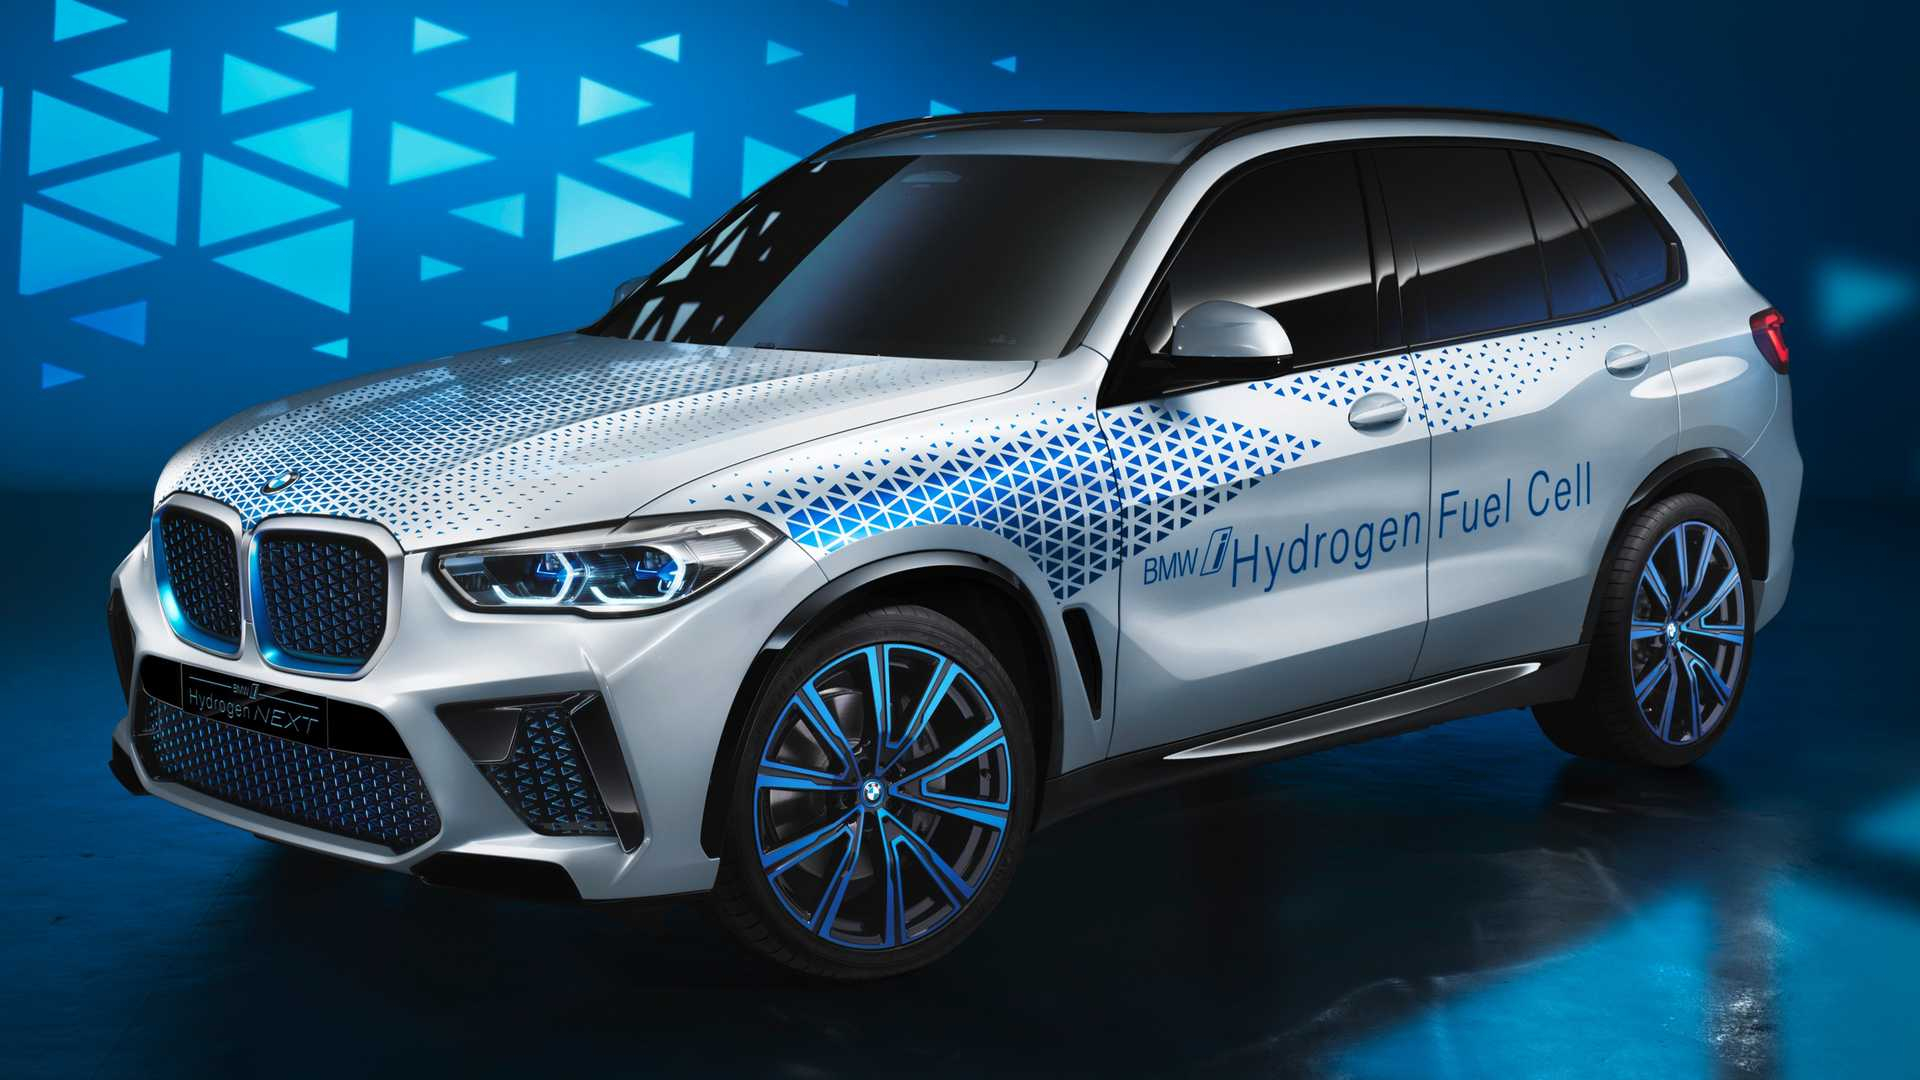 BMW Will Launch Fuel Cell Electric X5 SUV In 2022